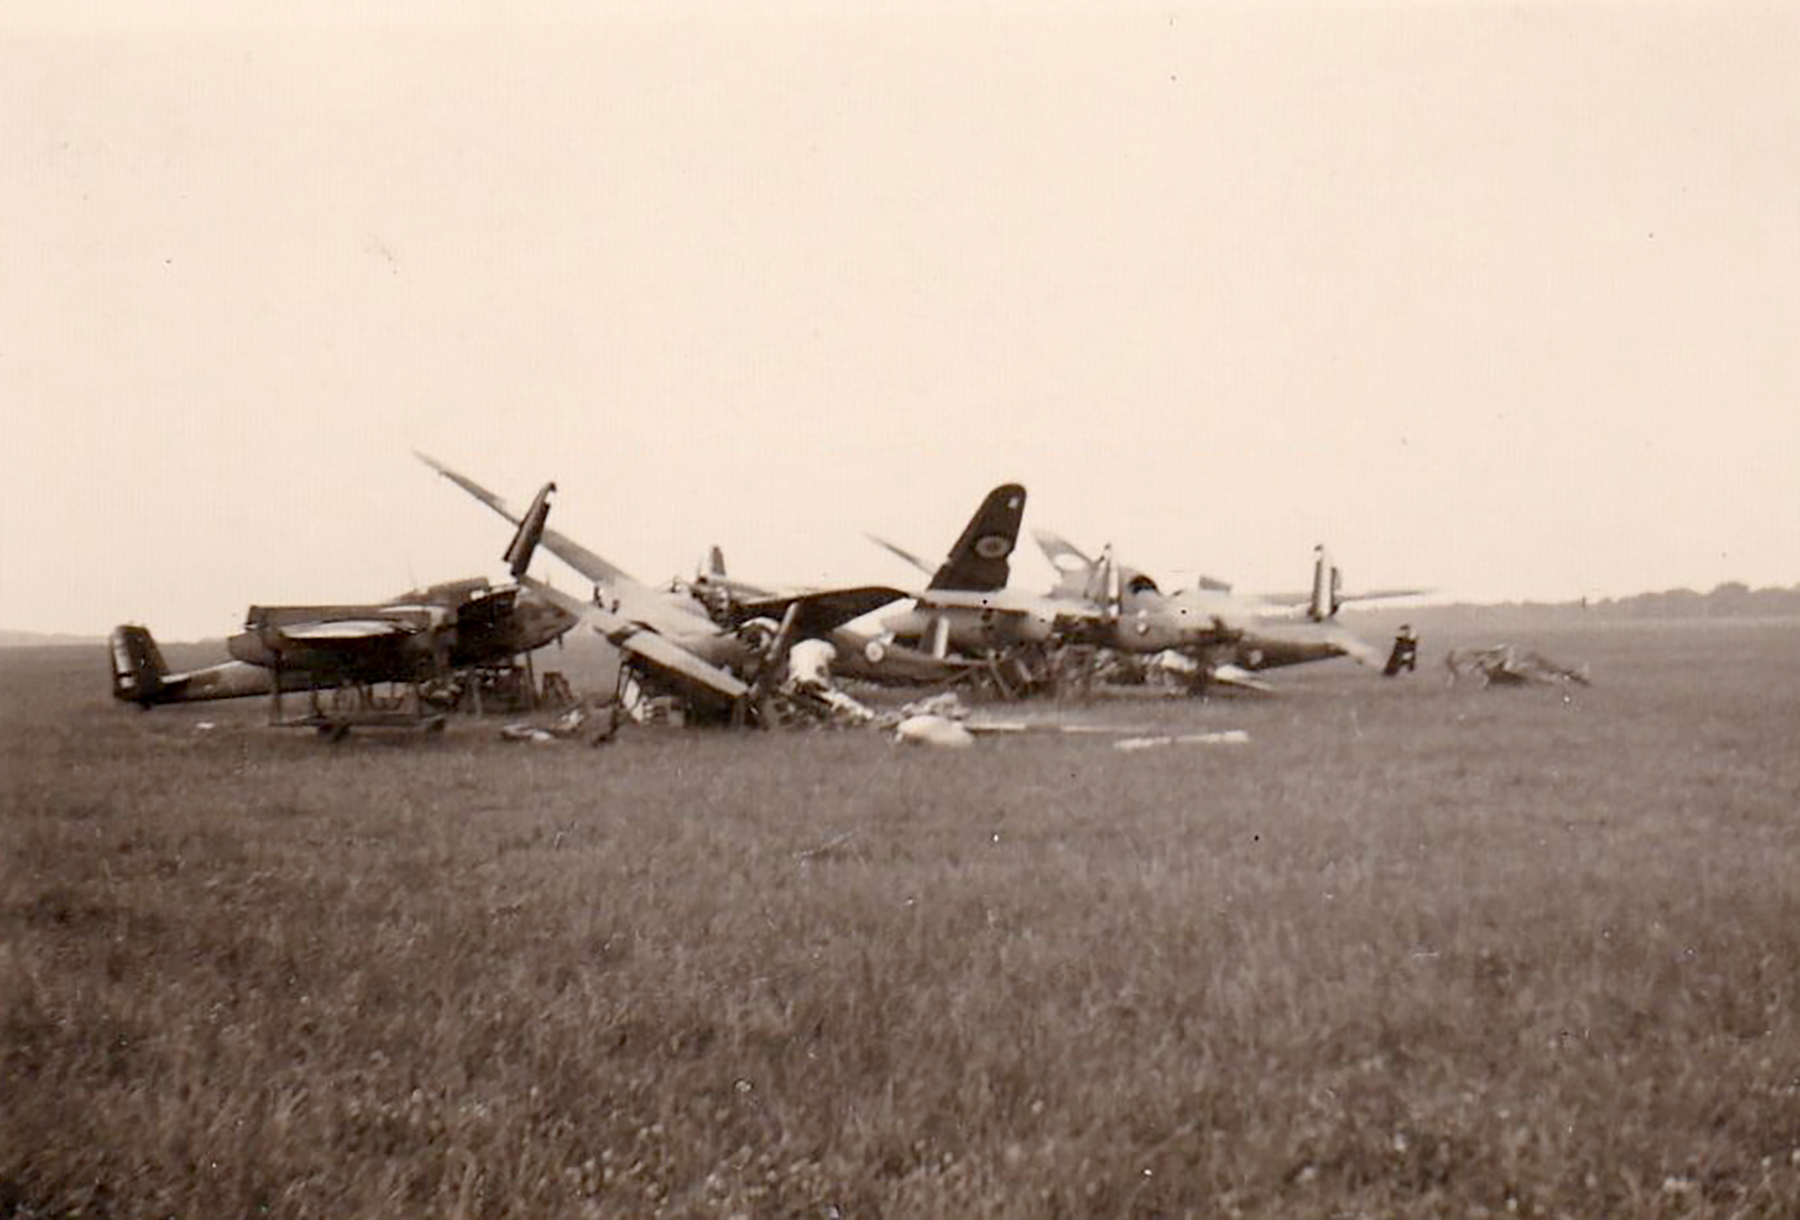 French Airforce Breguet Bre 691 await scrapping after the fall of France Jun 1940 ebay 01